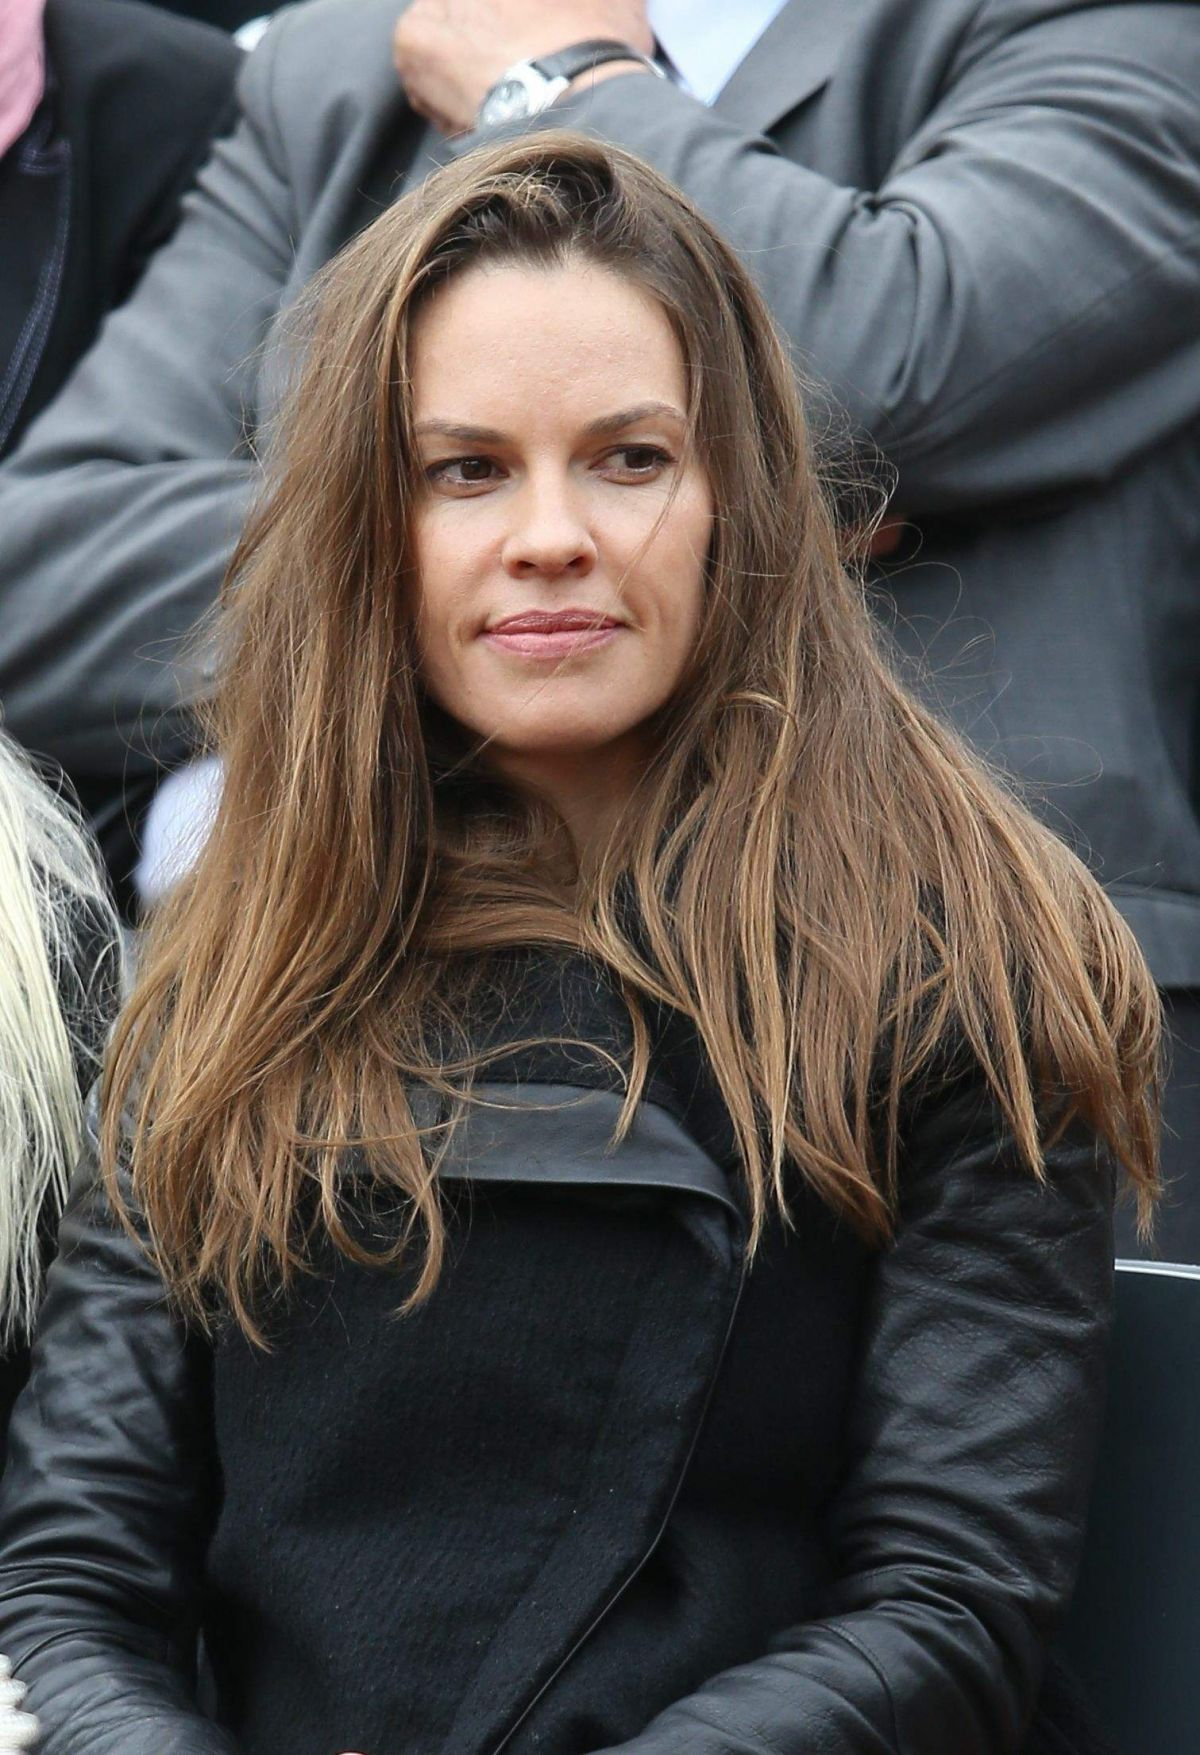 Hilary Swank Attends The Roland Garros French Open - Celebzz